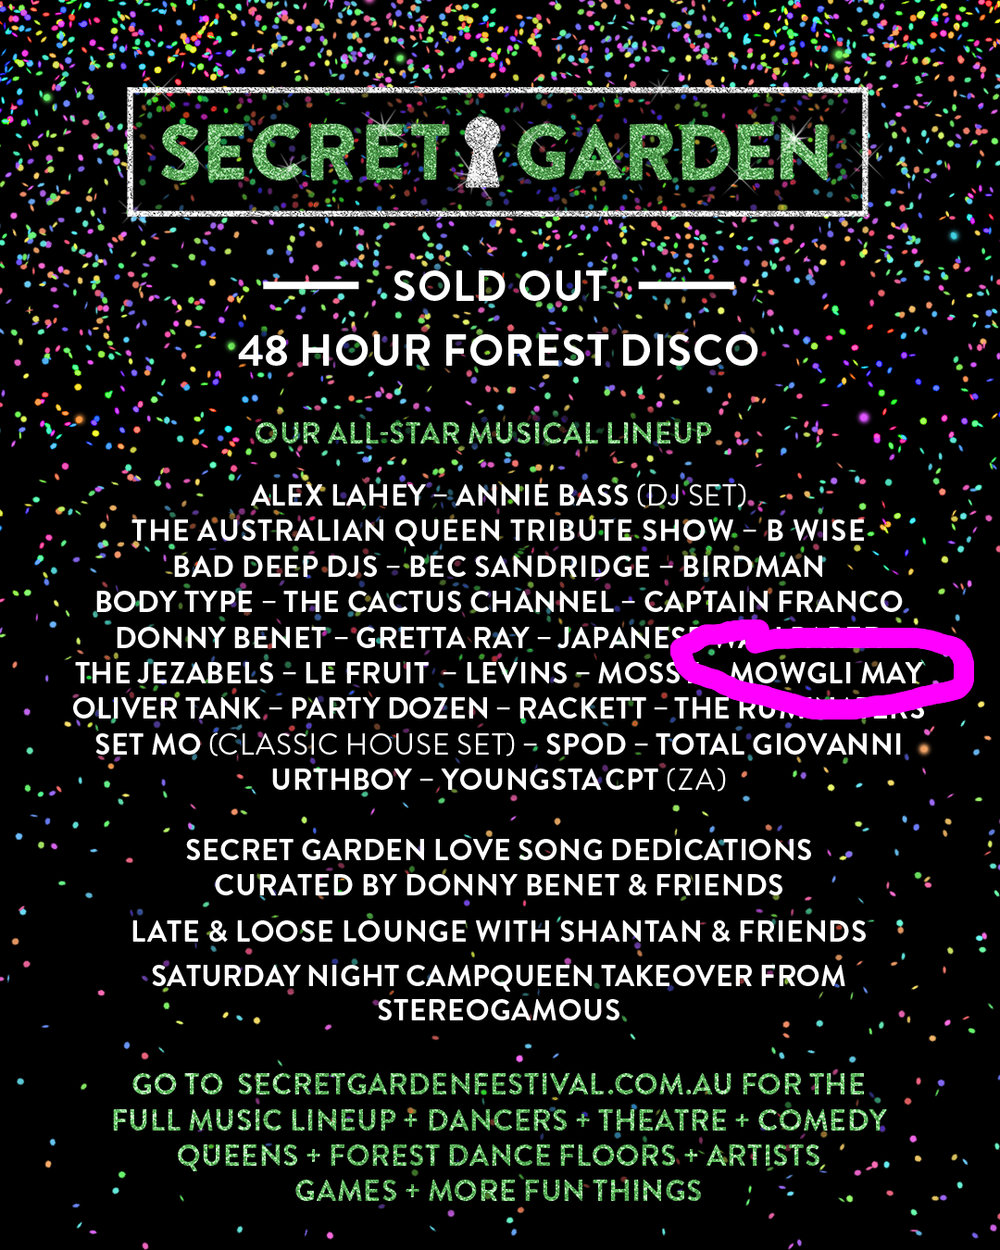 December 2016 - The lineup announcement for Secret Garden Festival! I am playing my first festival ! Feels so surreal YET AGAIN even though I knew it was happening to see it on the poster is something else.